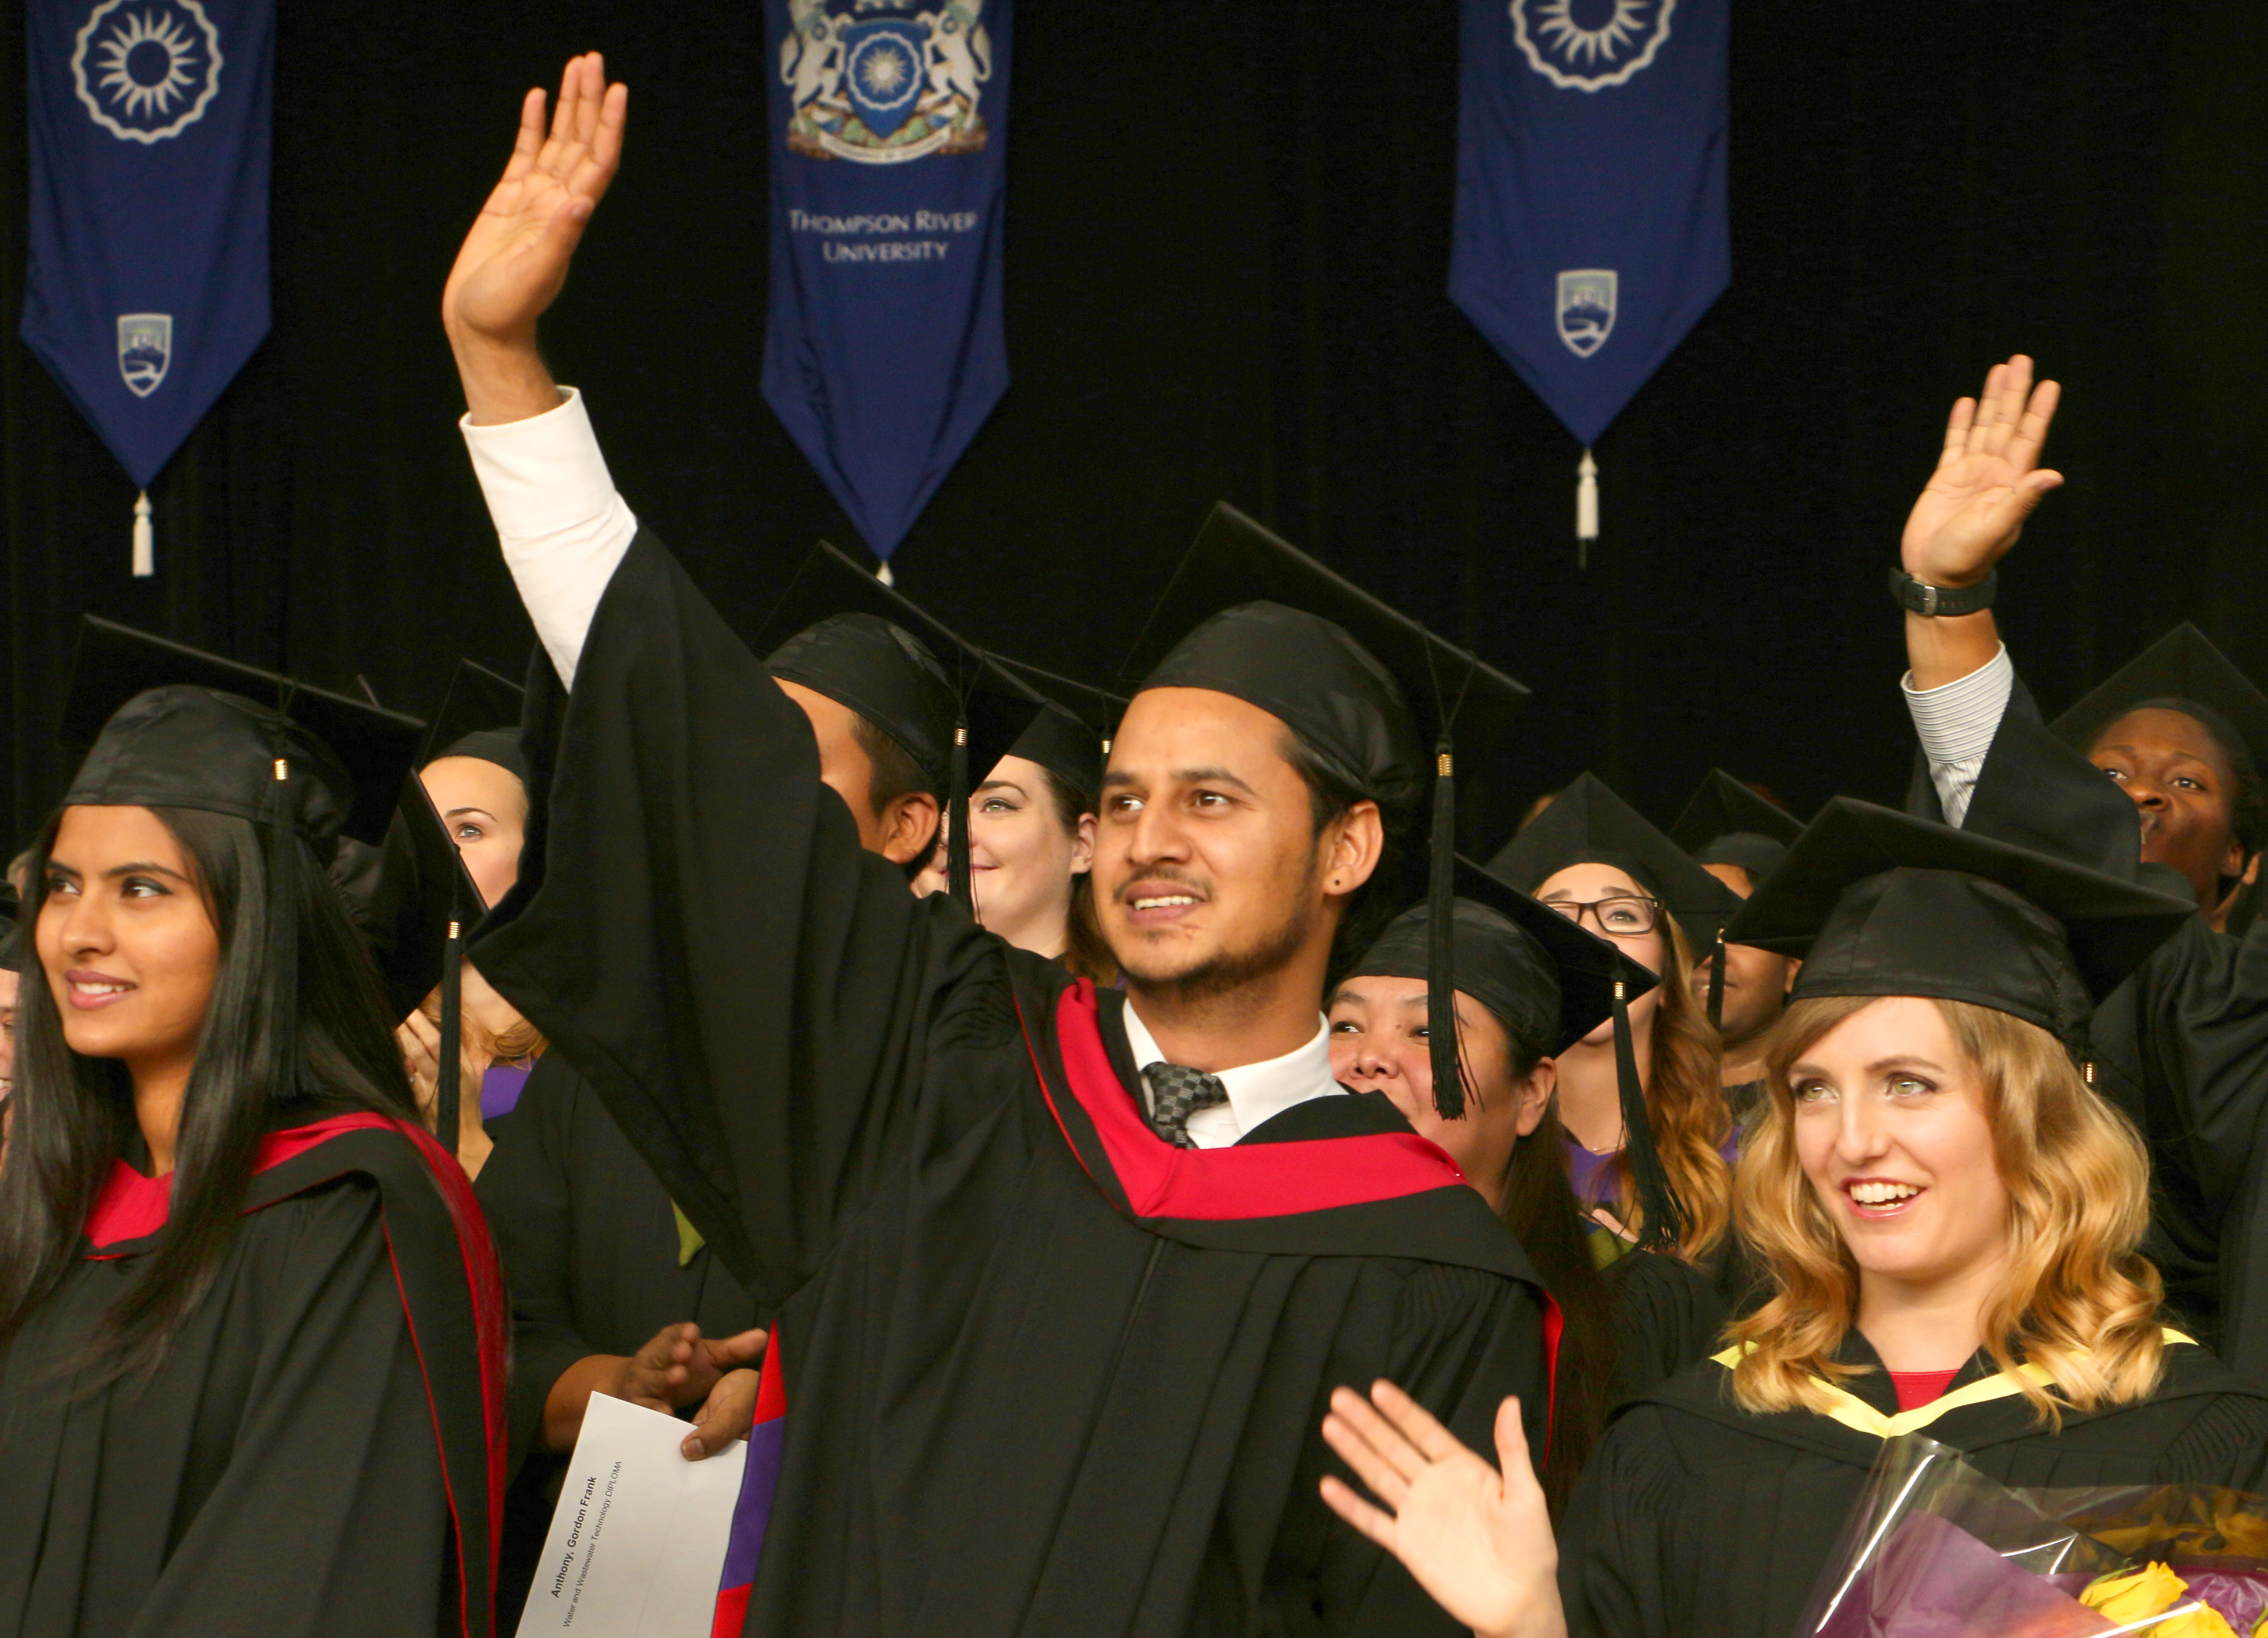 Fall Convocation 2015 held Oct. 16 at the Tournament Capital Centre.